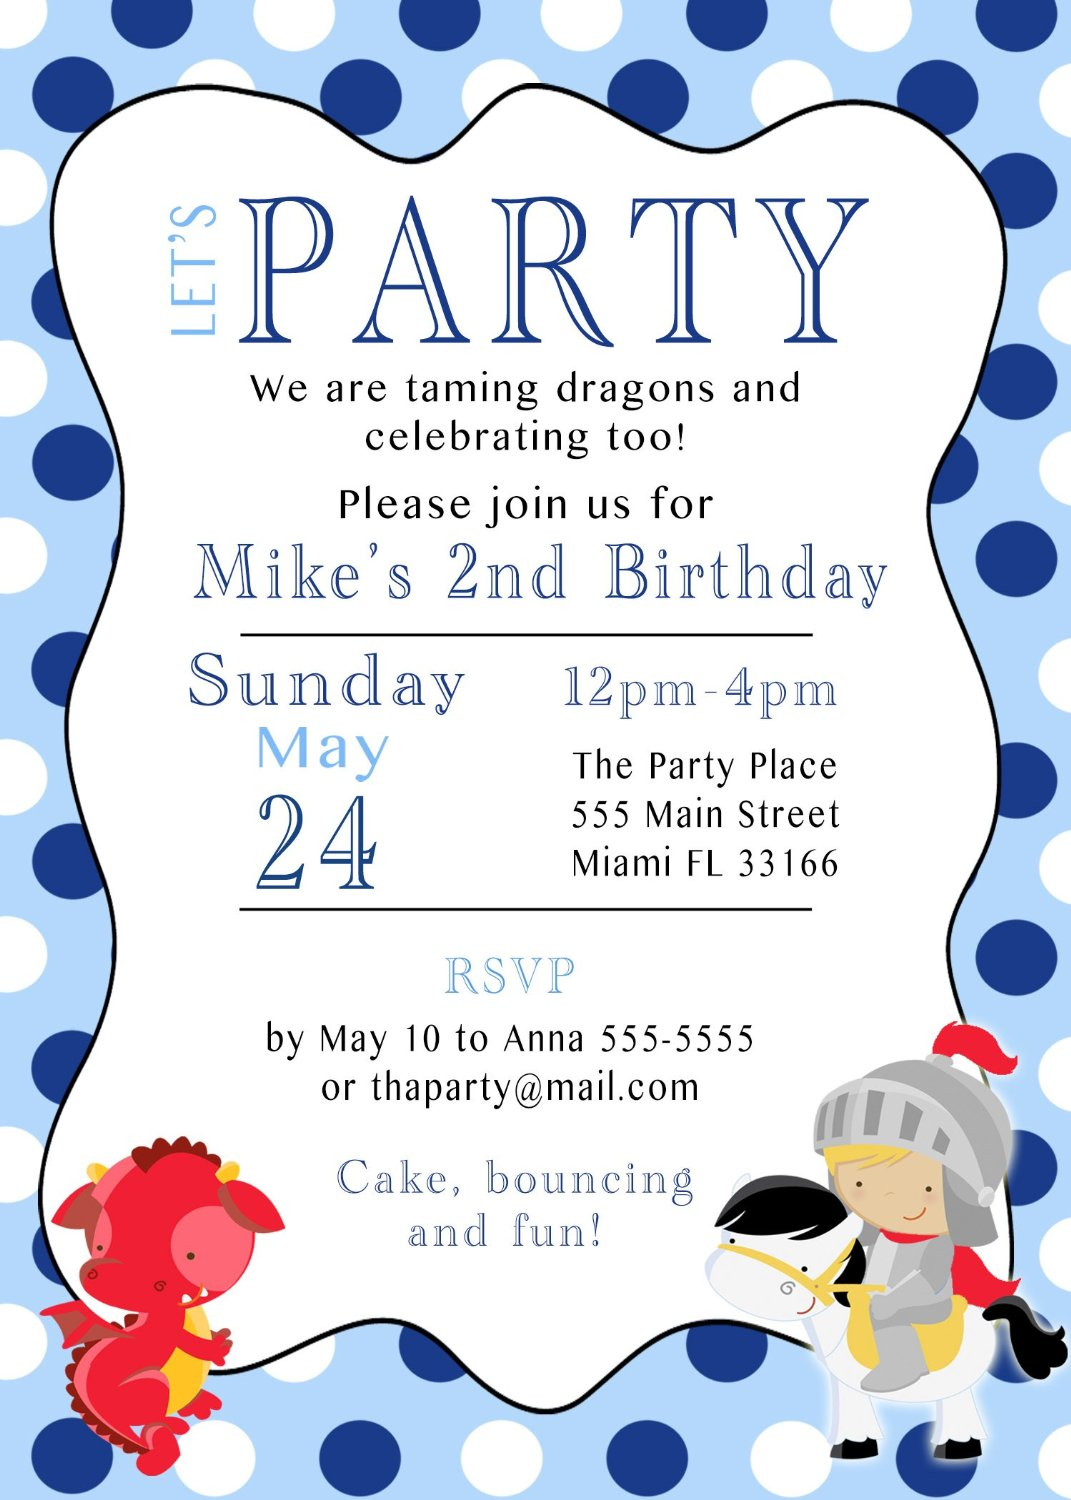 Buy Birthday Party Invitations - Colorful Dots - Print at Home in ...